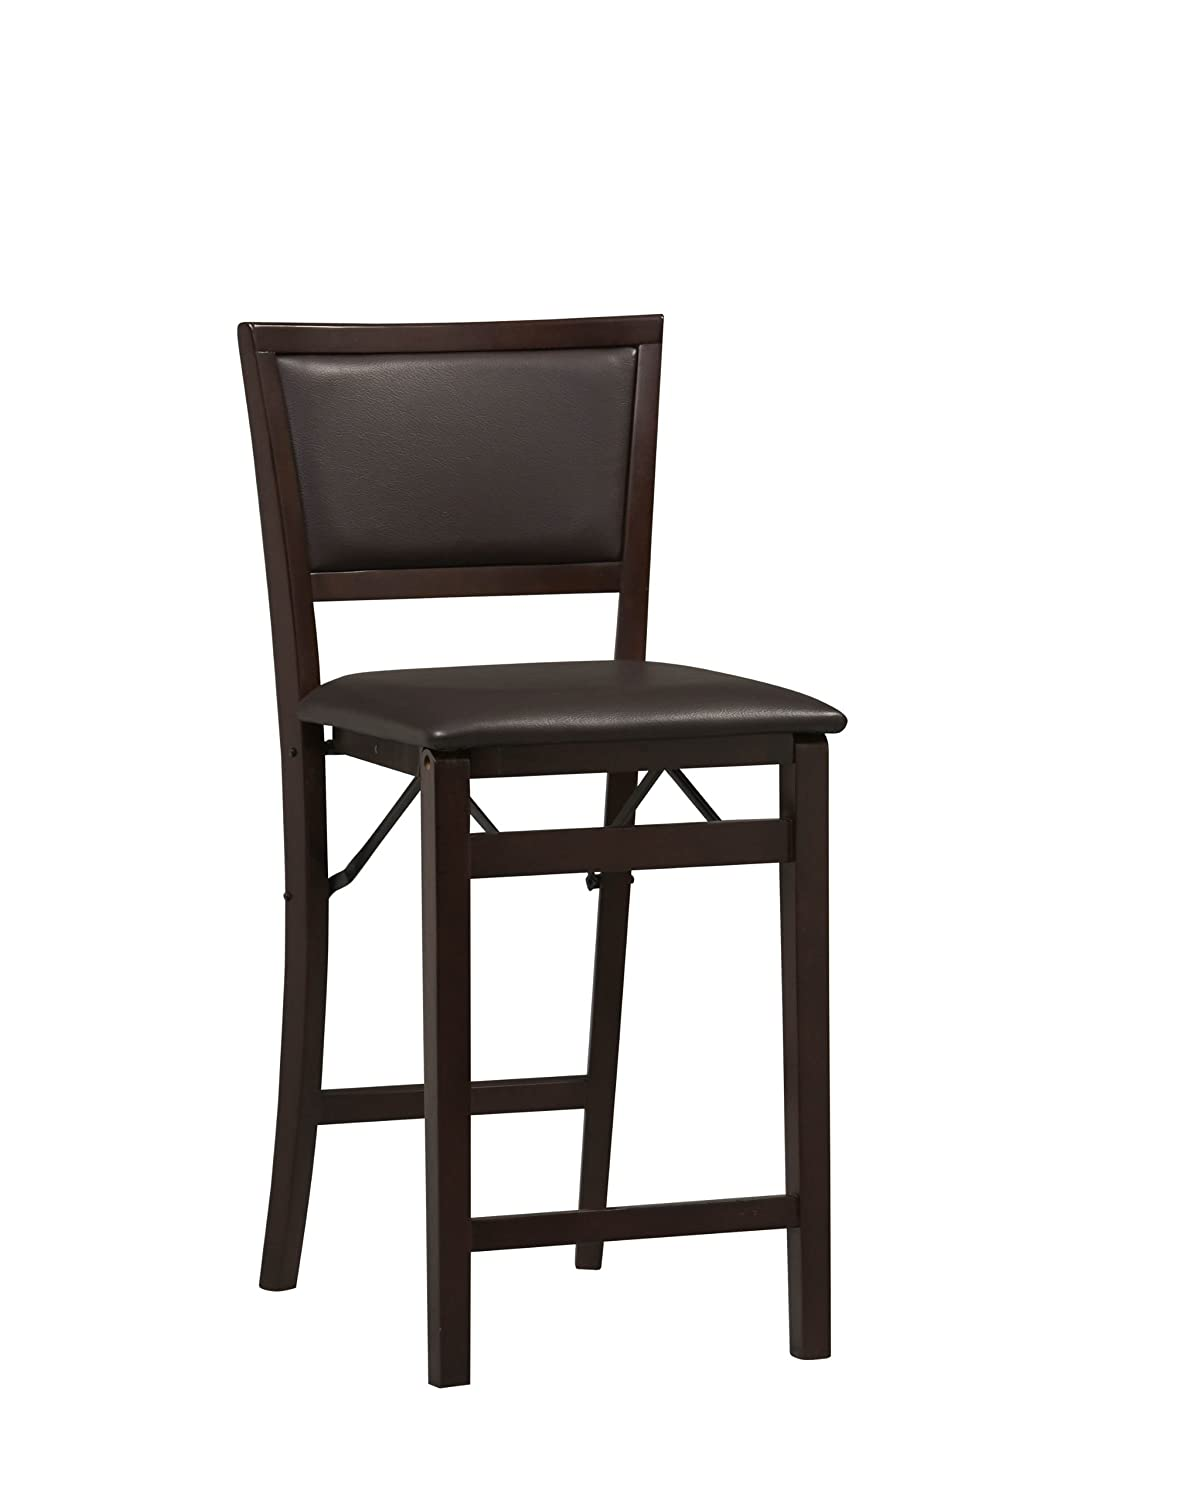 Most wished for  sc 1 st  Amazon.com : black and wood bar stools - islam-shia.org